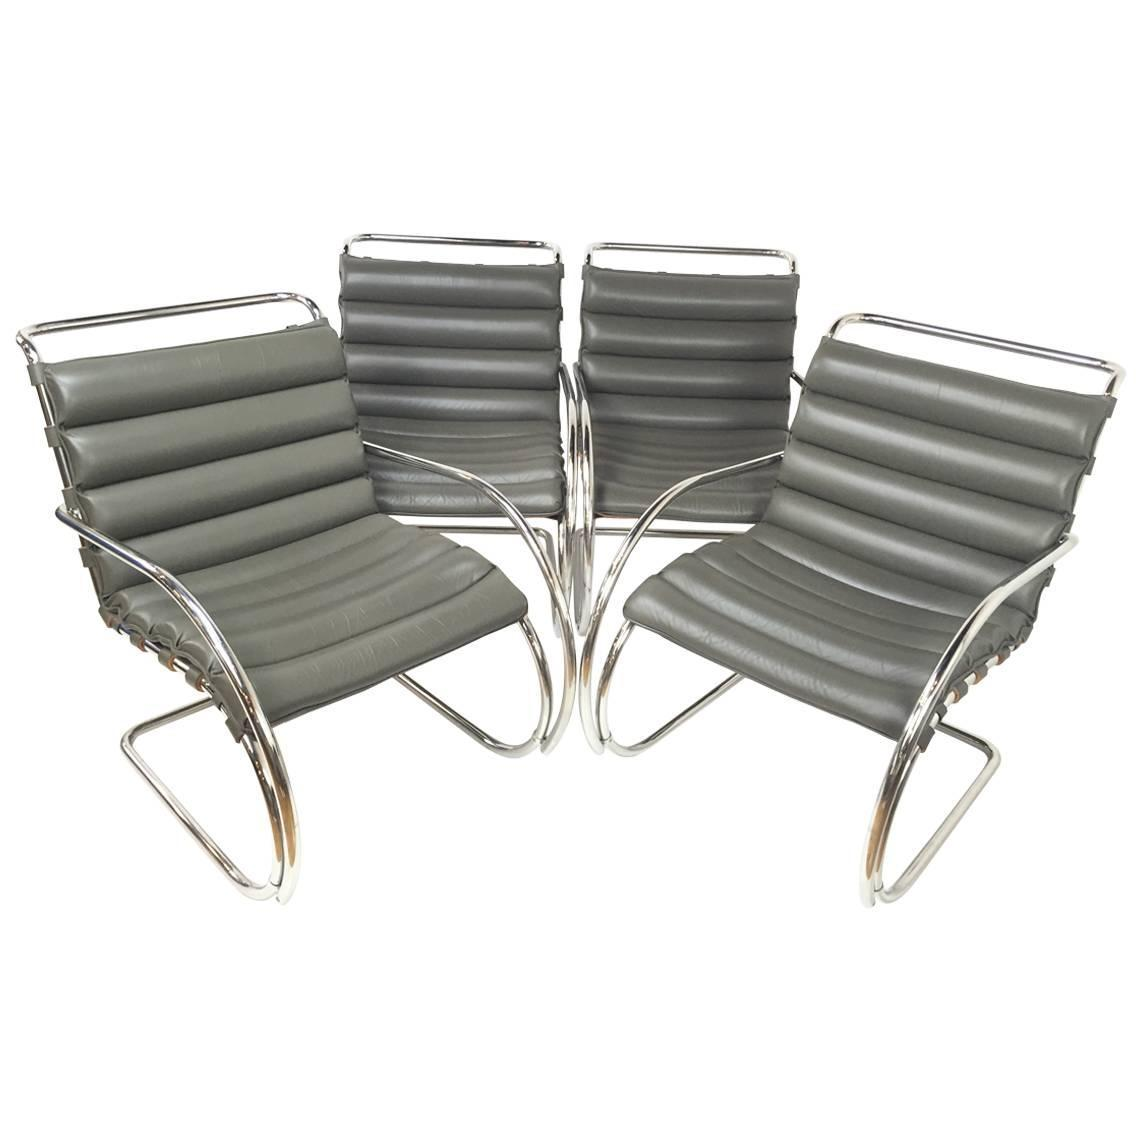 four leather mies van der rohe mr lounge chairs for sale at 1stdibs